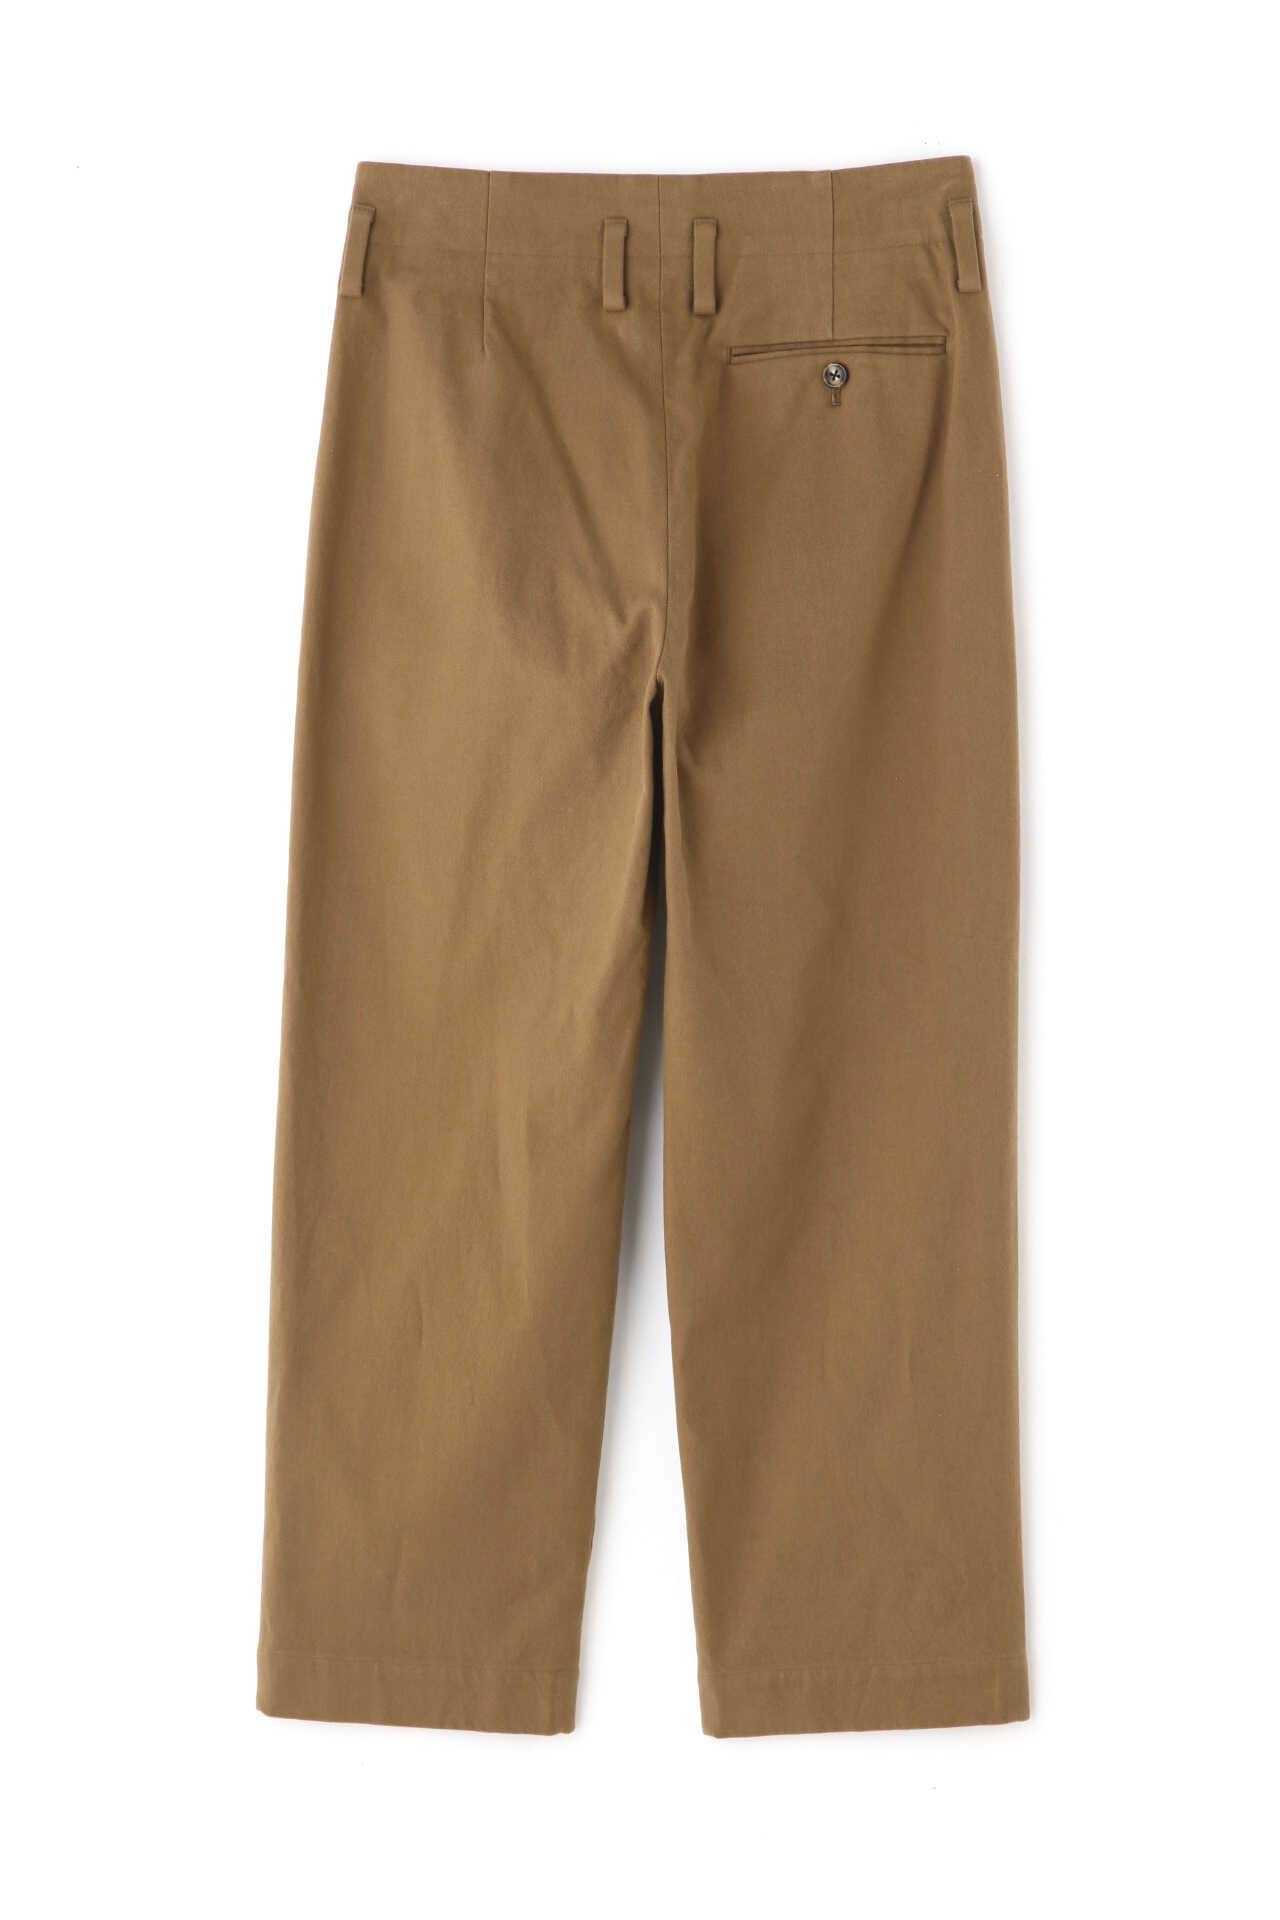 WASHED COTTON TWILL6